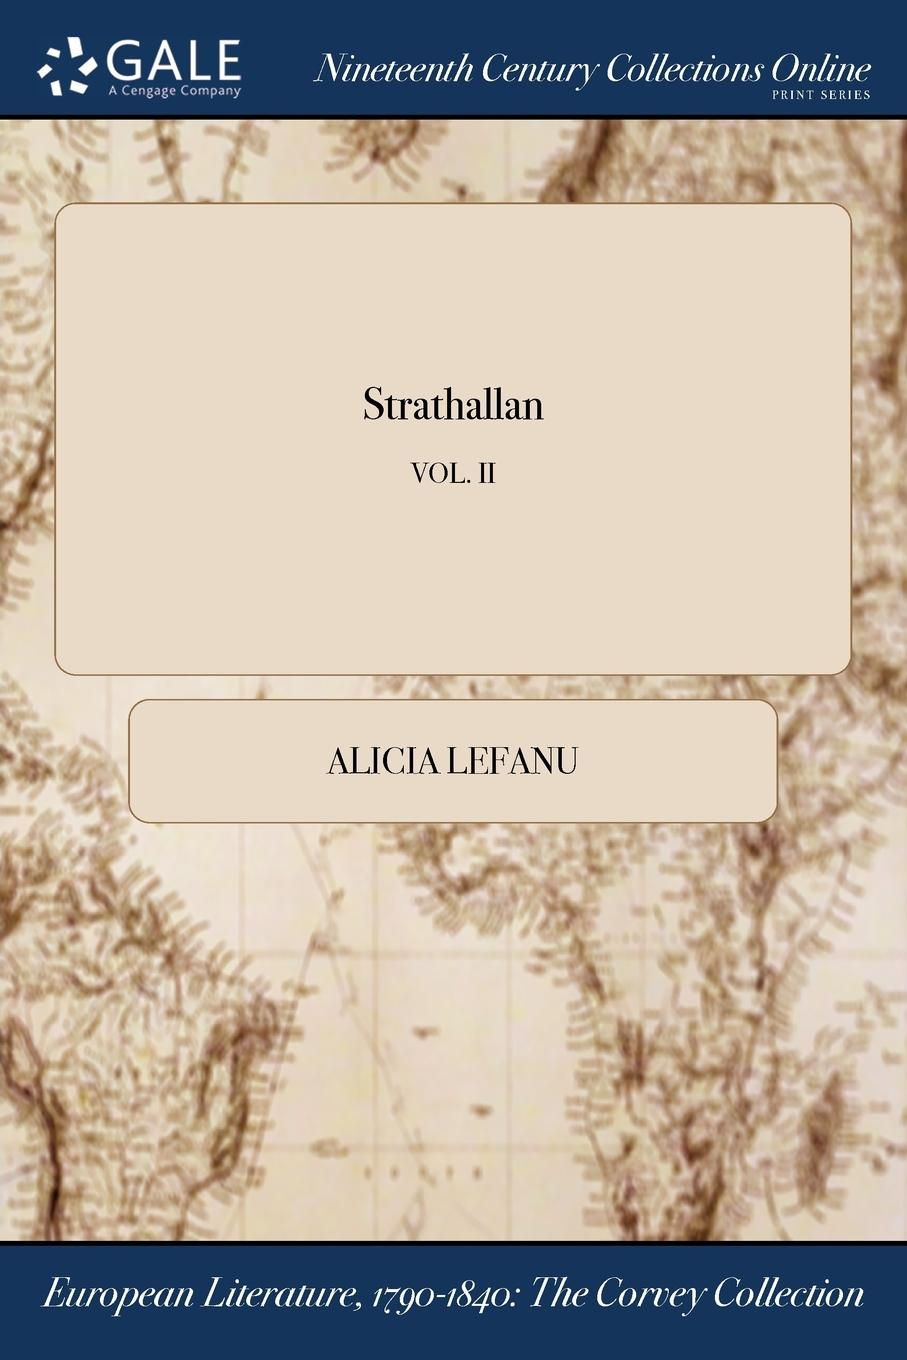 Strathallan; VOL.  II The Corvey Collection comprises one of the most important collections...